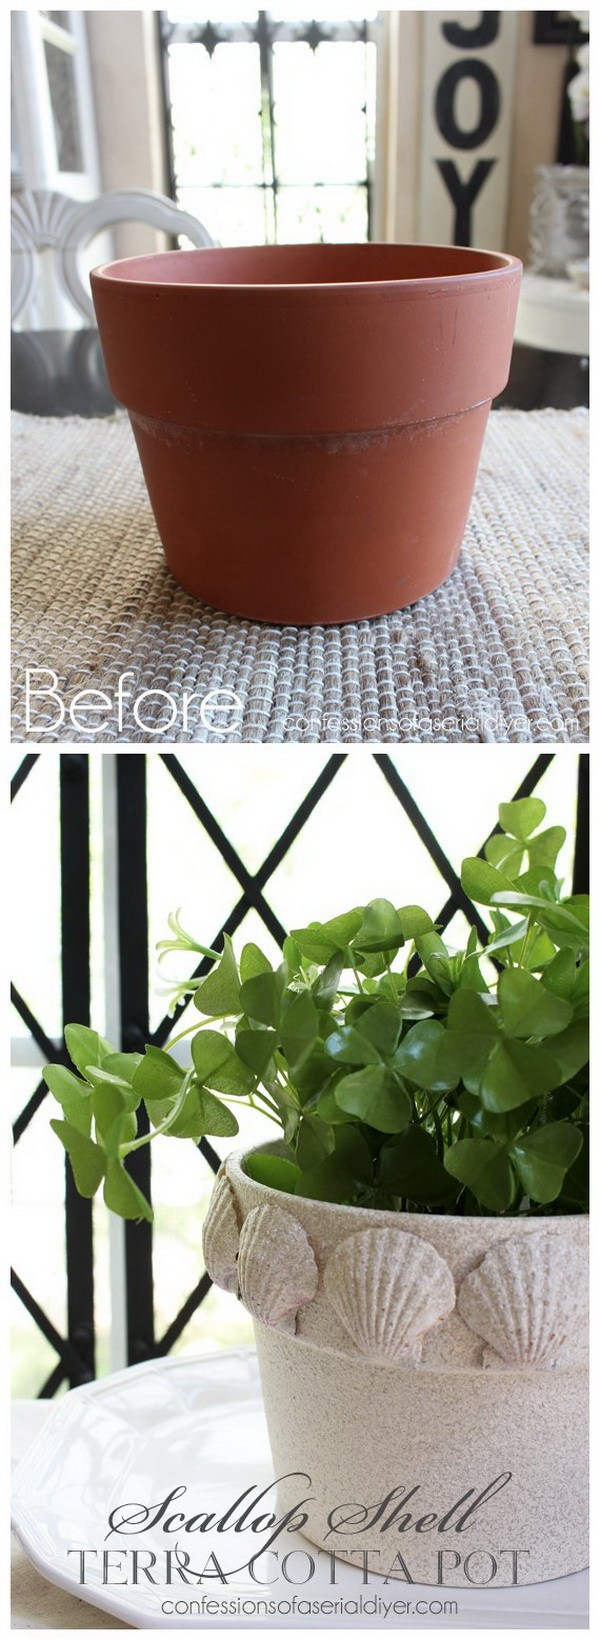 10-diy-ideas-to-decorate-with-terracotta-pots